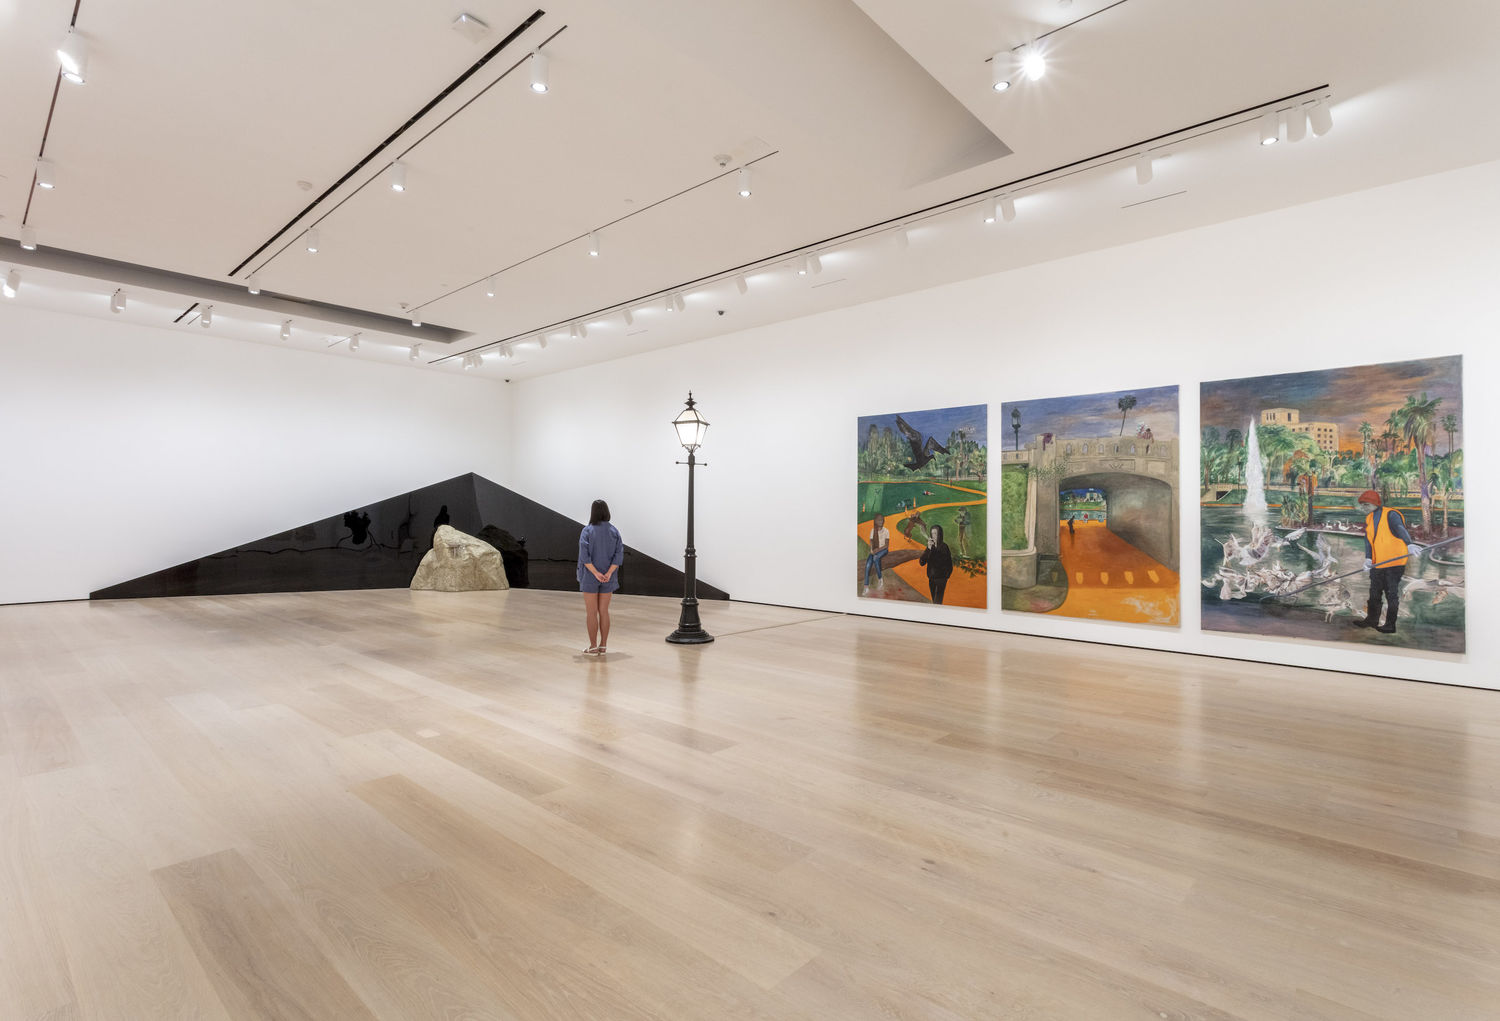 A gallery with a black streetlamp in the middle that divides two works. To the right is a triptych of paintings displaying MacArthur Park in Los Angeles. To the left is a dark, triangular shape that extends across corner of the room, with the peak of the object in the corner/center. A large rock sits on the floor in front of the triangle. A person stands to the left of the streetlamp.